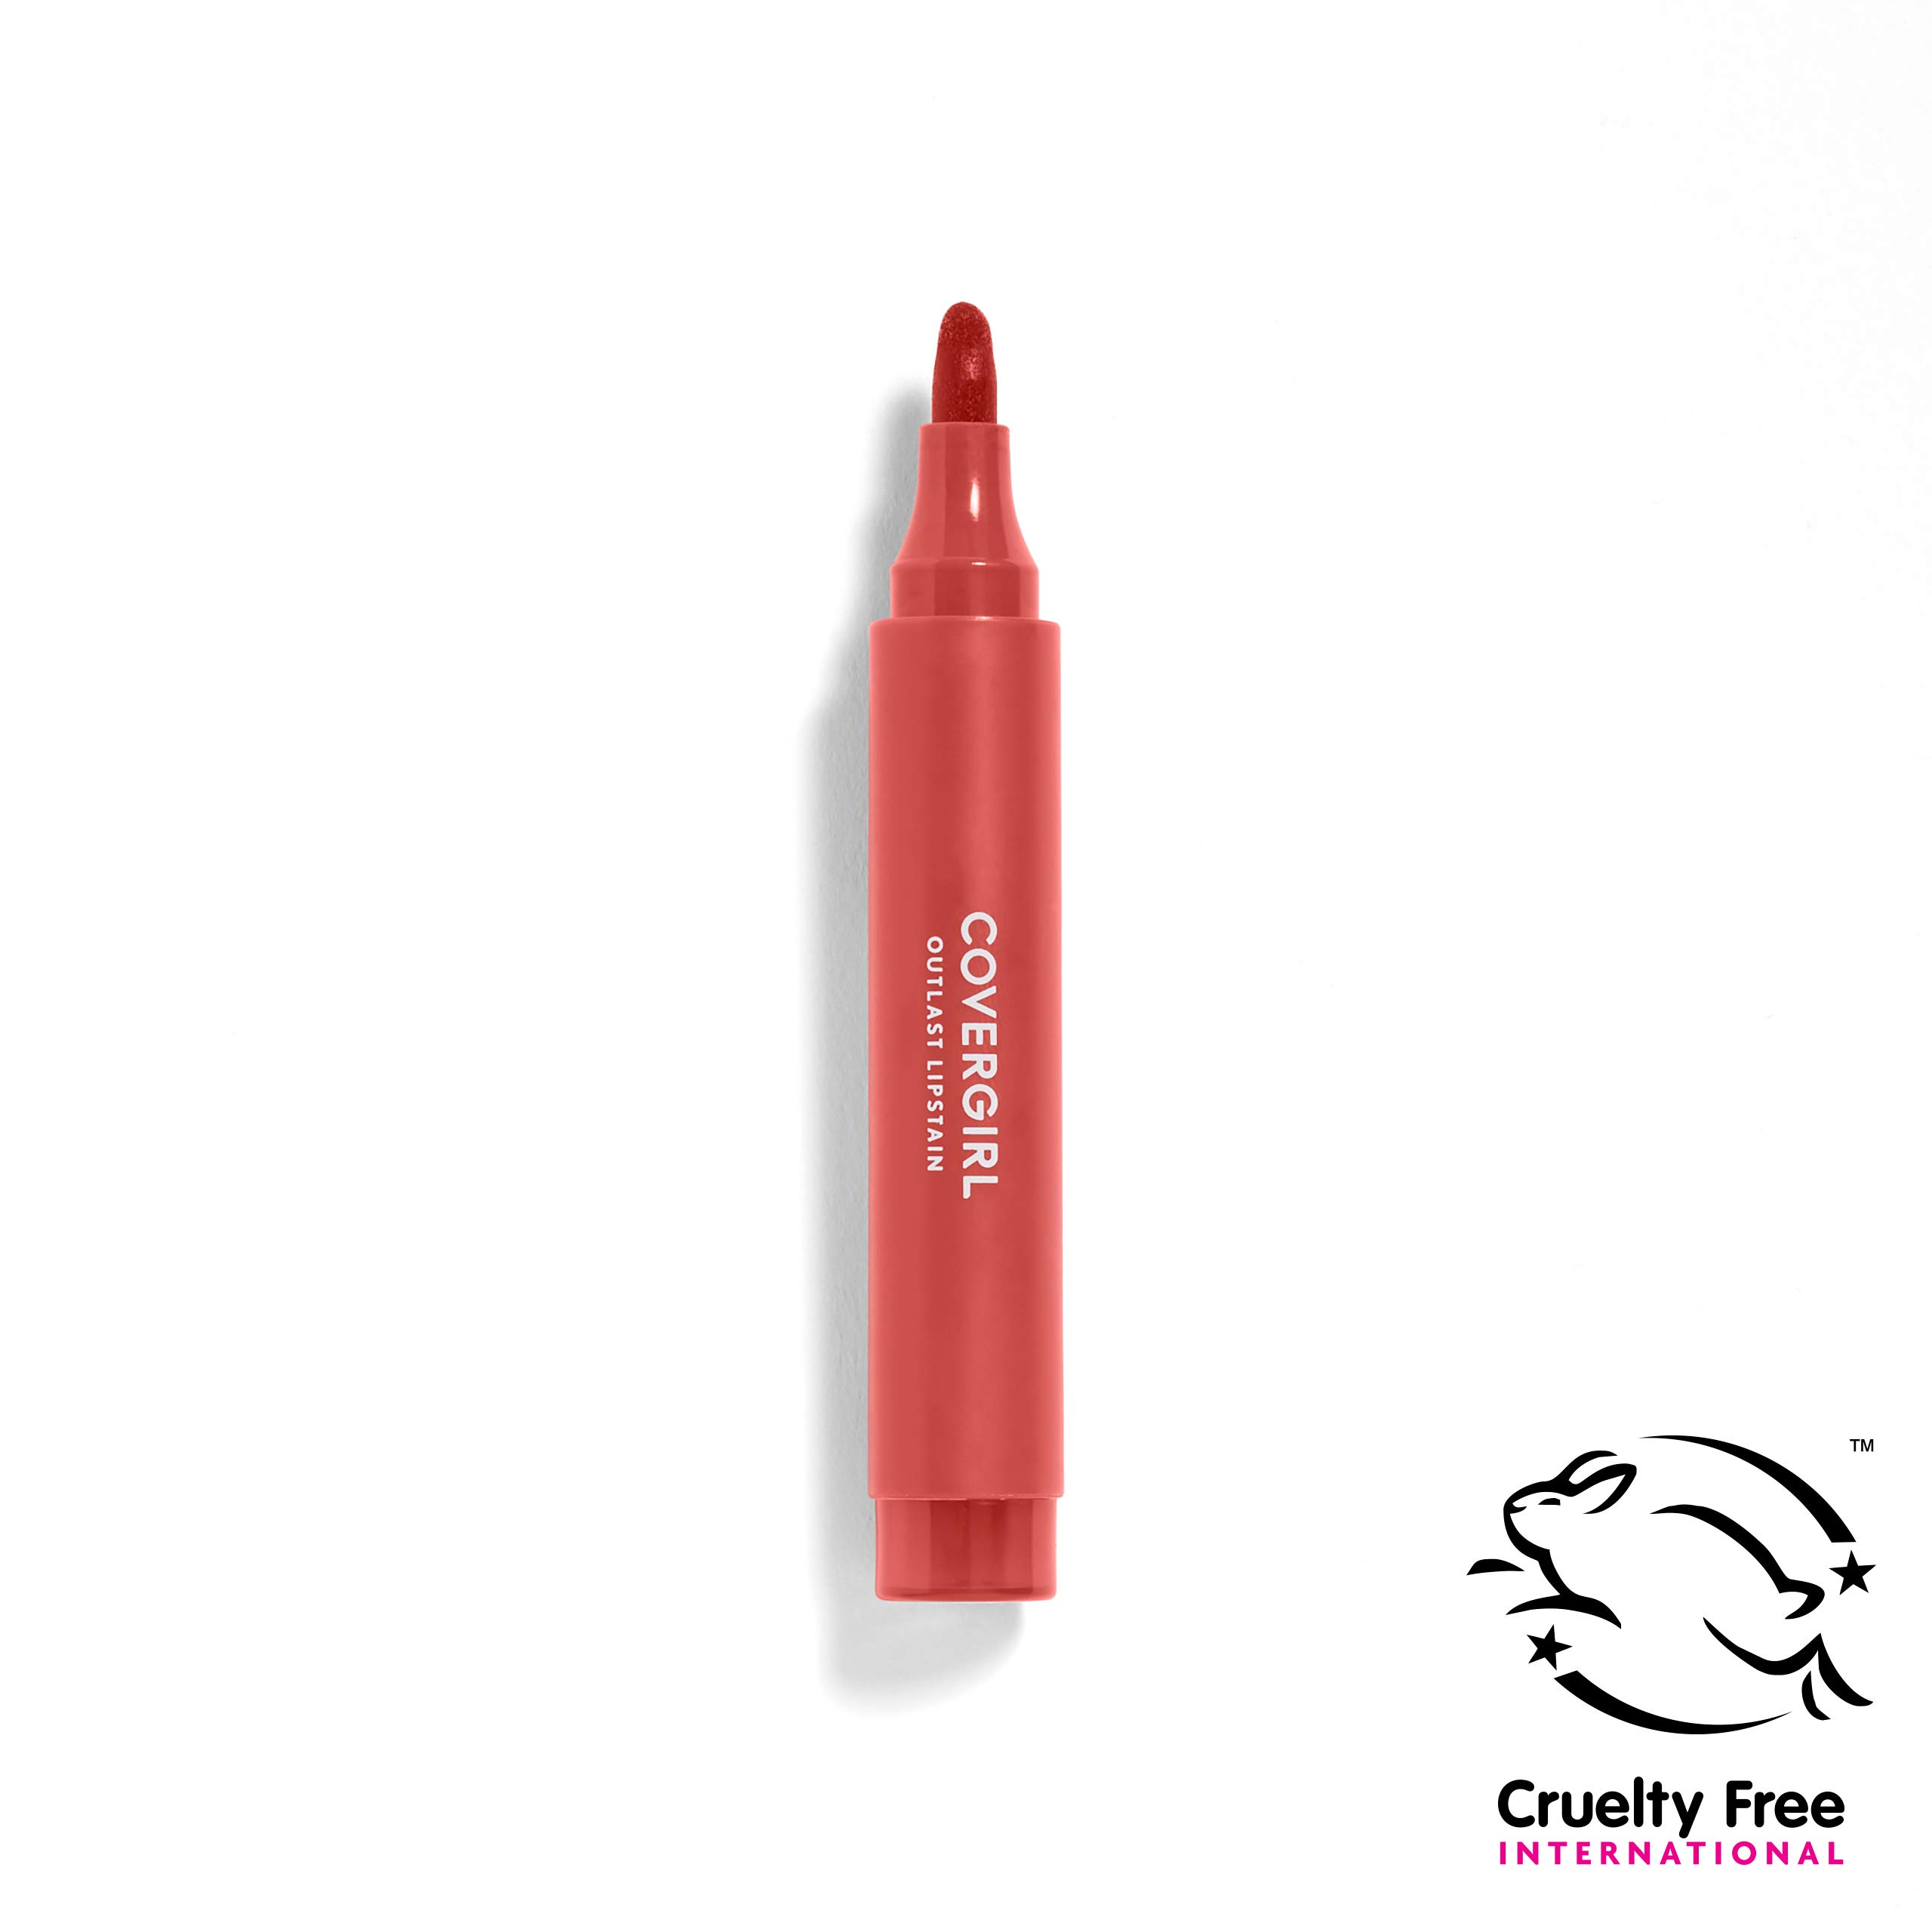 COVERGIRL Outlast Lipstain, Flirty Nude 435, 0.09 Ounce (Packaging May Vary) Water-Based Lip Color with Precision Applicator